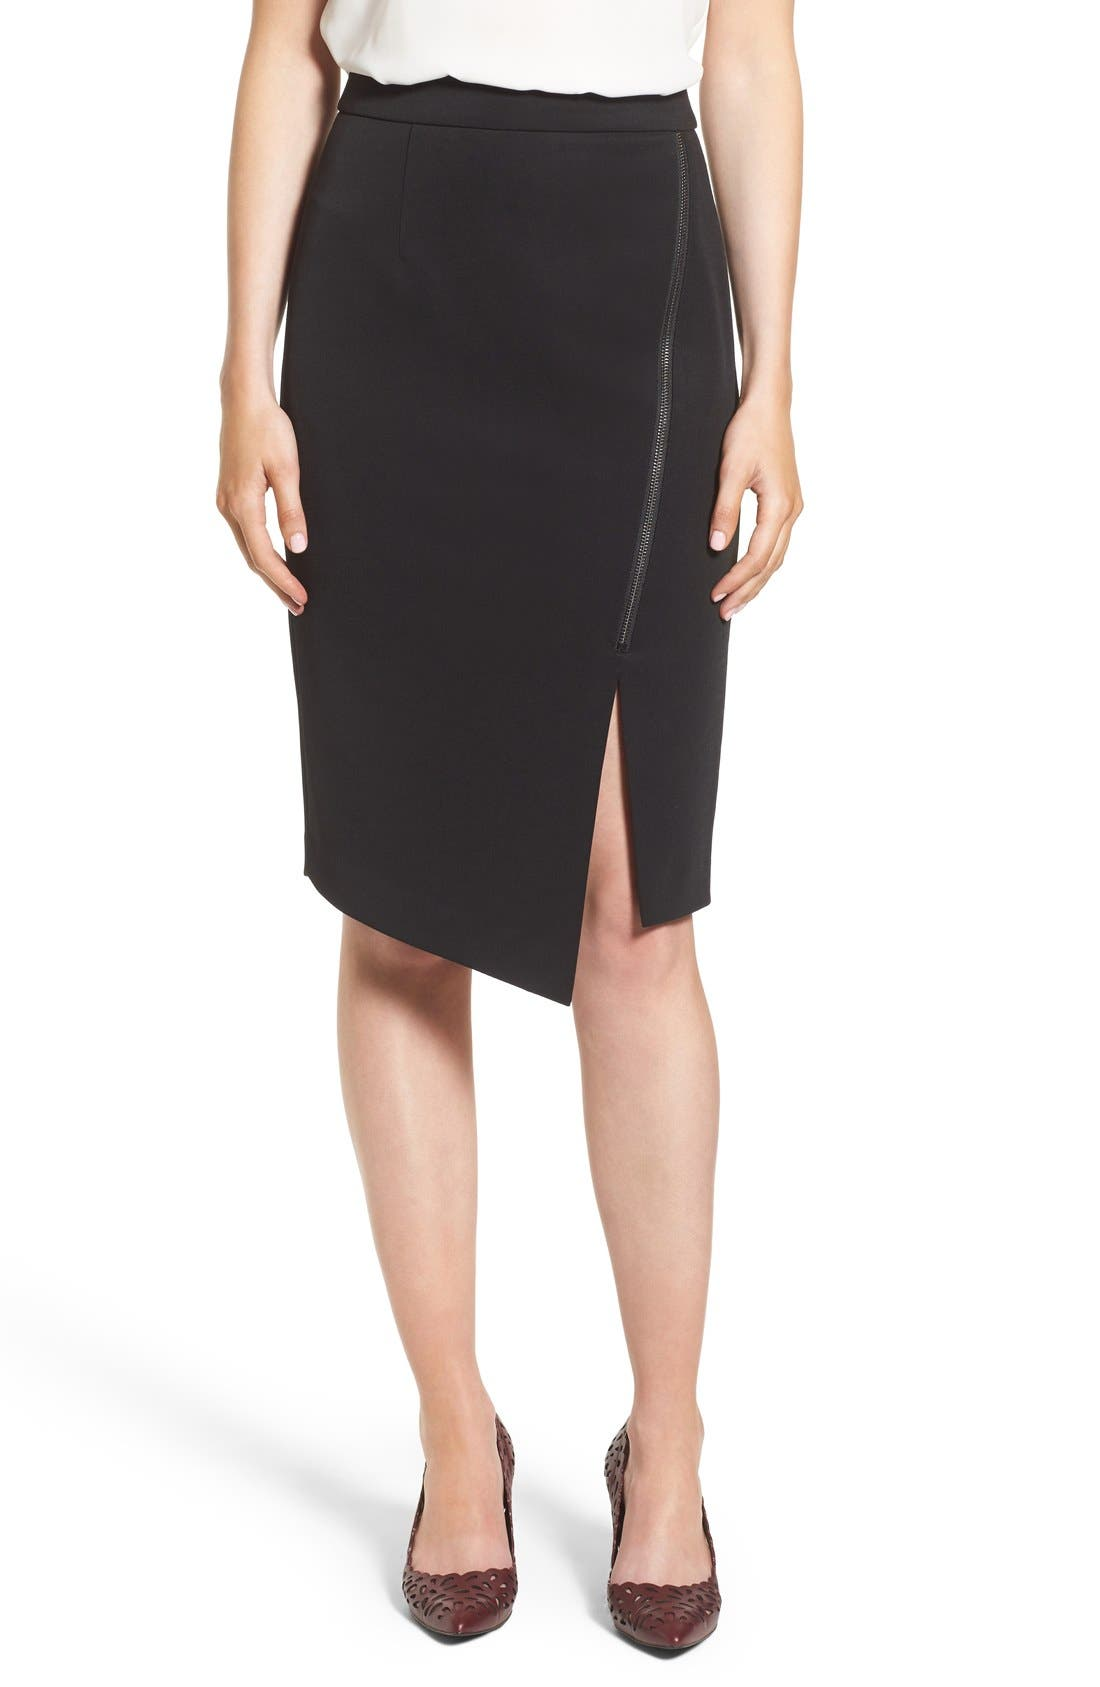 Alternate Image 1 Selected - Halogen® Asymmetrical Zip Pencil Skirt (Regular & Petite)